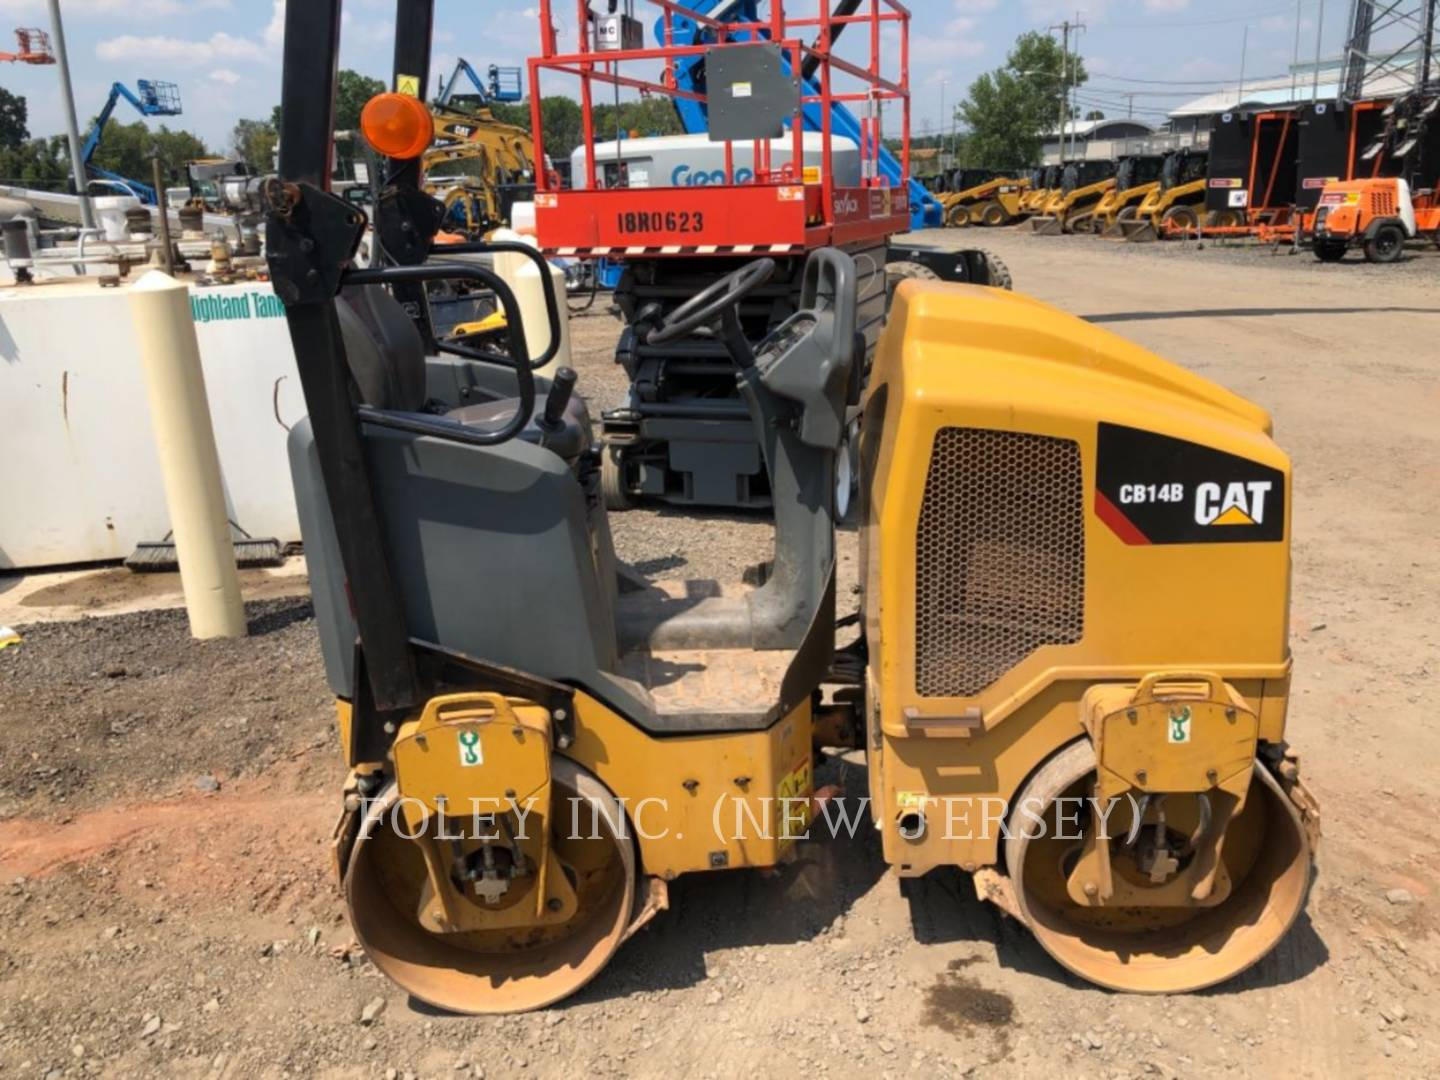 Rent Cat Heavy Construction Equipment Rental - NJ, PA and DE | Foley Inc